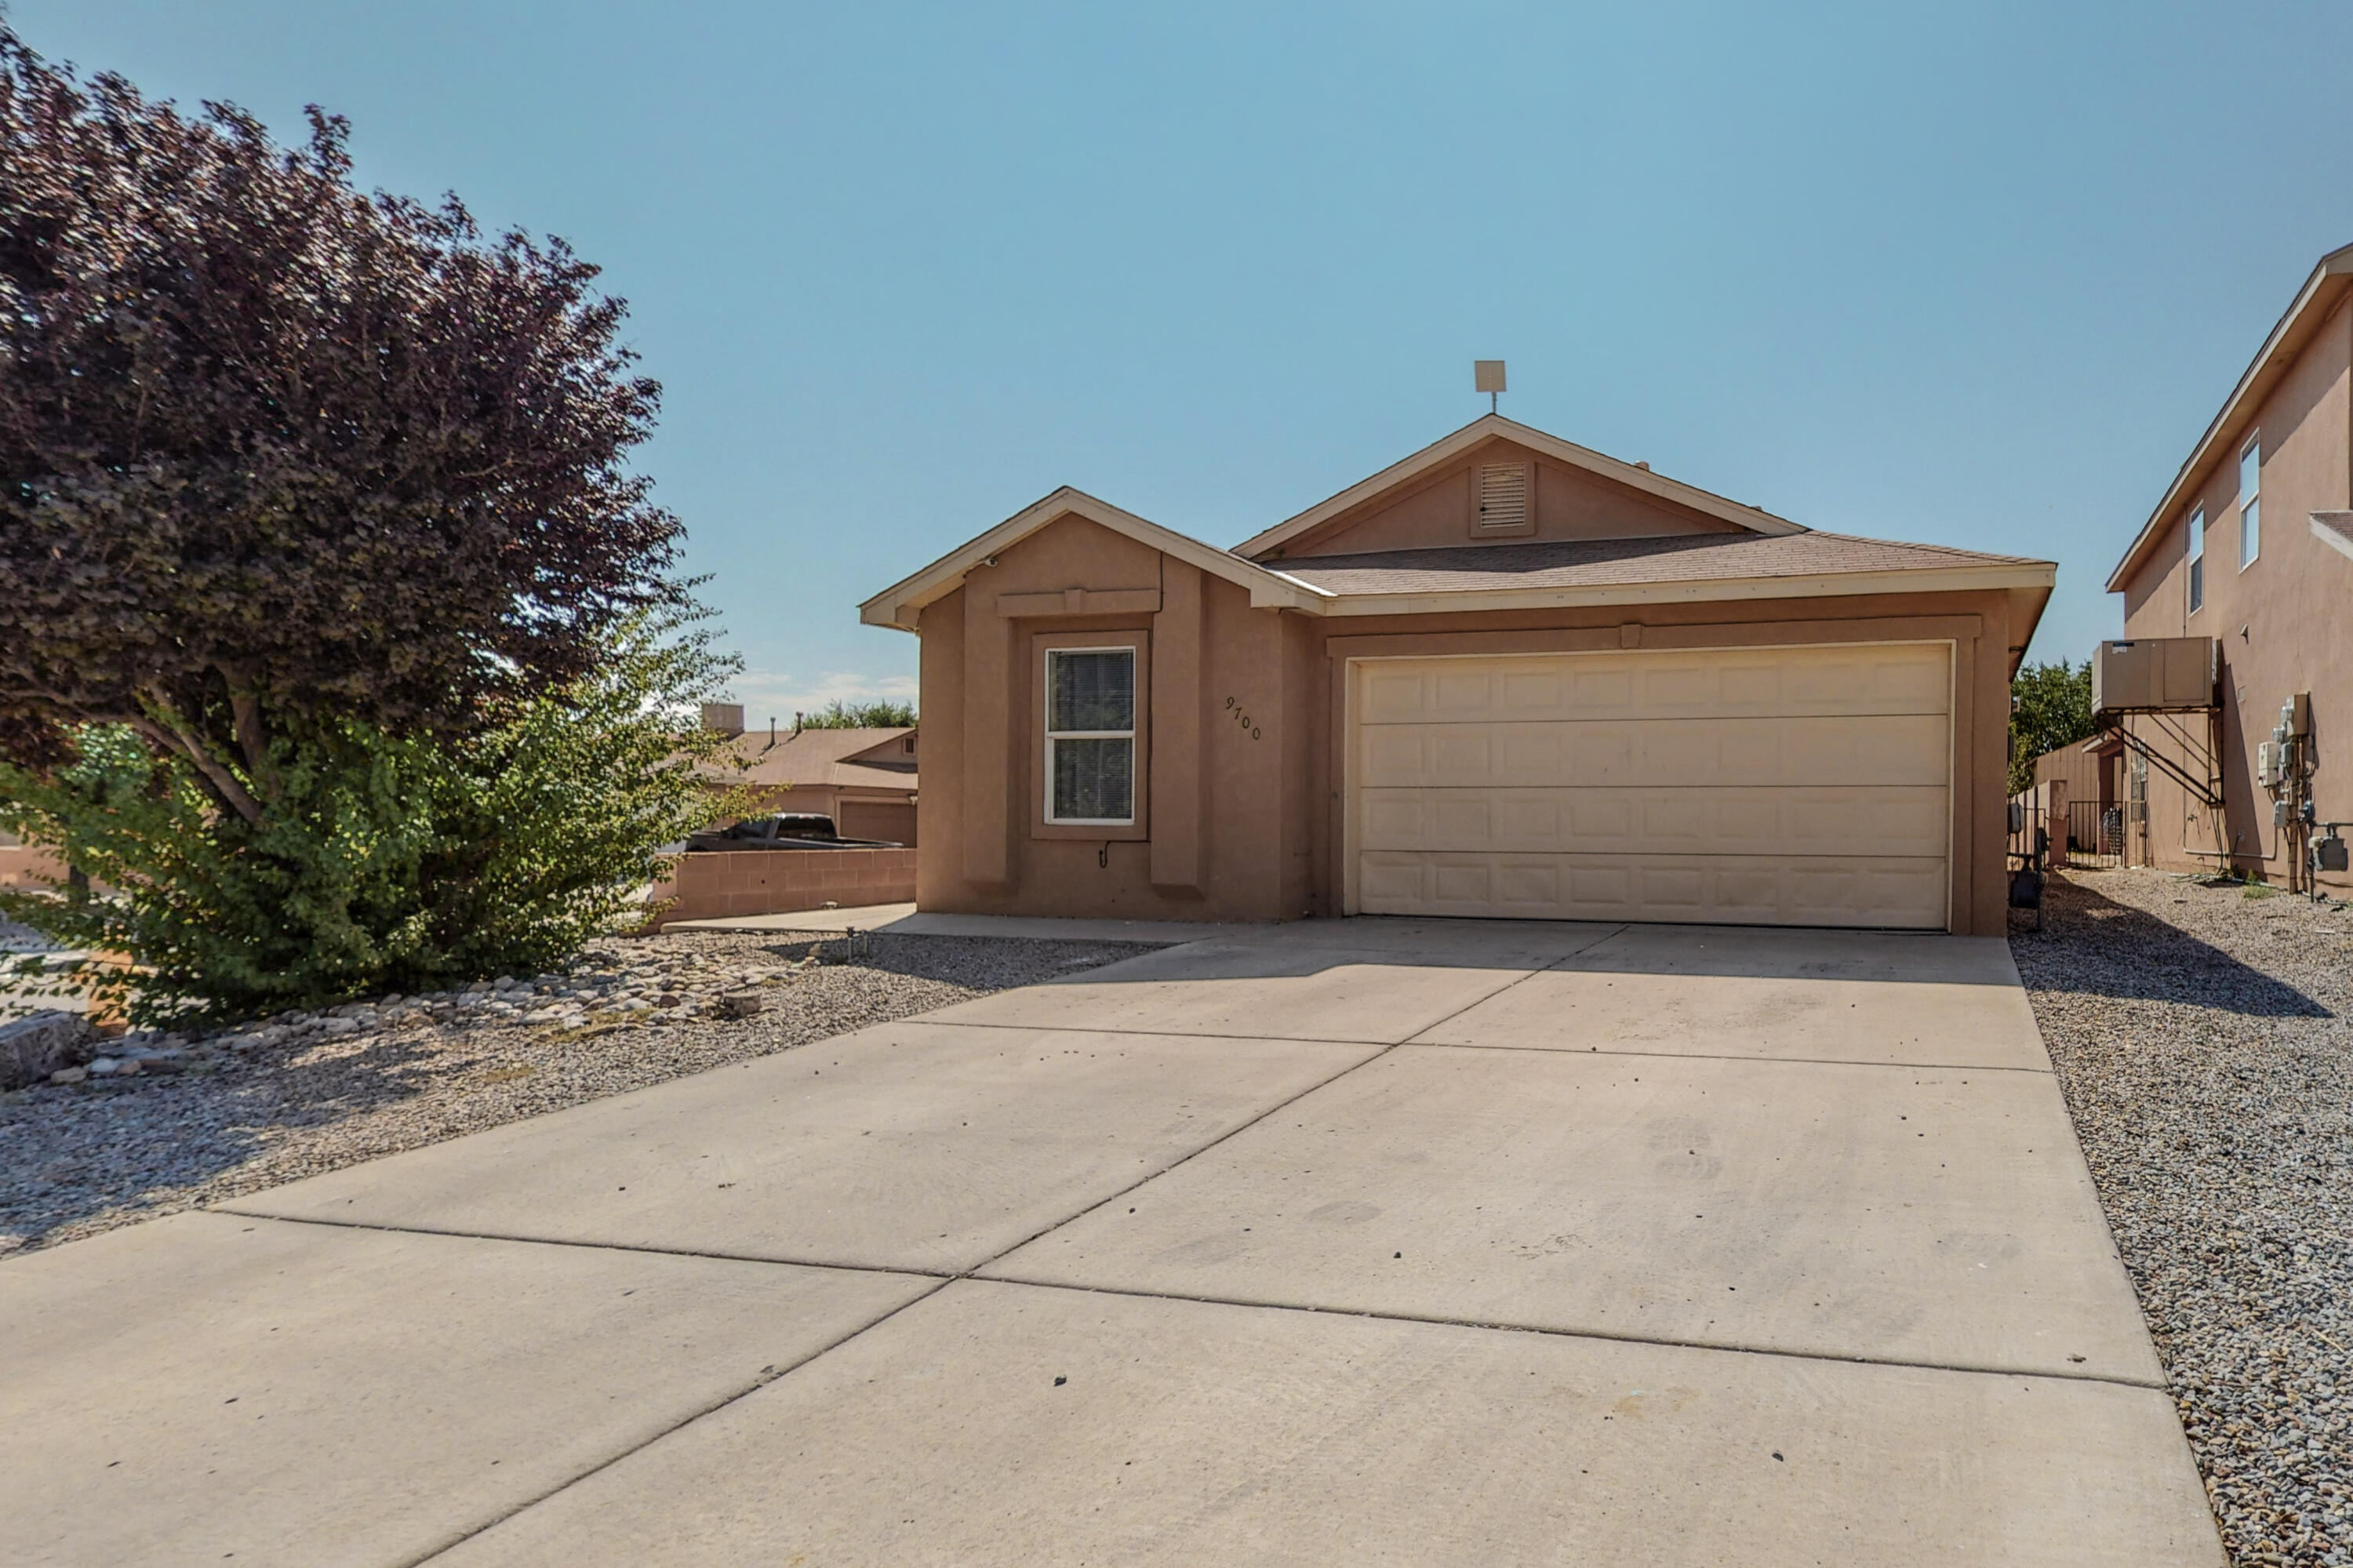 *MULTIPLE OFFERS RECEIVED* Great opportunity for first home or investment! Home needs some TLC and priced accordingly. Great floor plan and corner lot to top it off! Living room tile is only 6 months old, kitchen flooring redone in 2017,  kitchen countertops are Granite natural stone with beautiful central island, second bathroom redone in 2020 with cultured marble shower and countertop. Home has an extra room that can be used as an office/extra bedroom with double doors. HUGE  opportunity with this one! Jump on it quick!